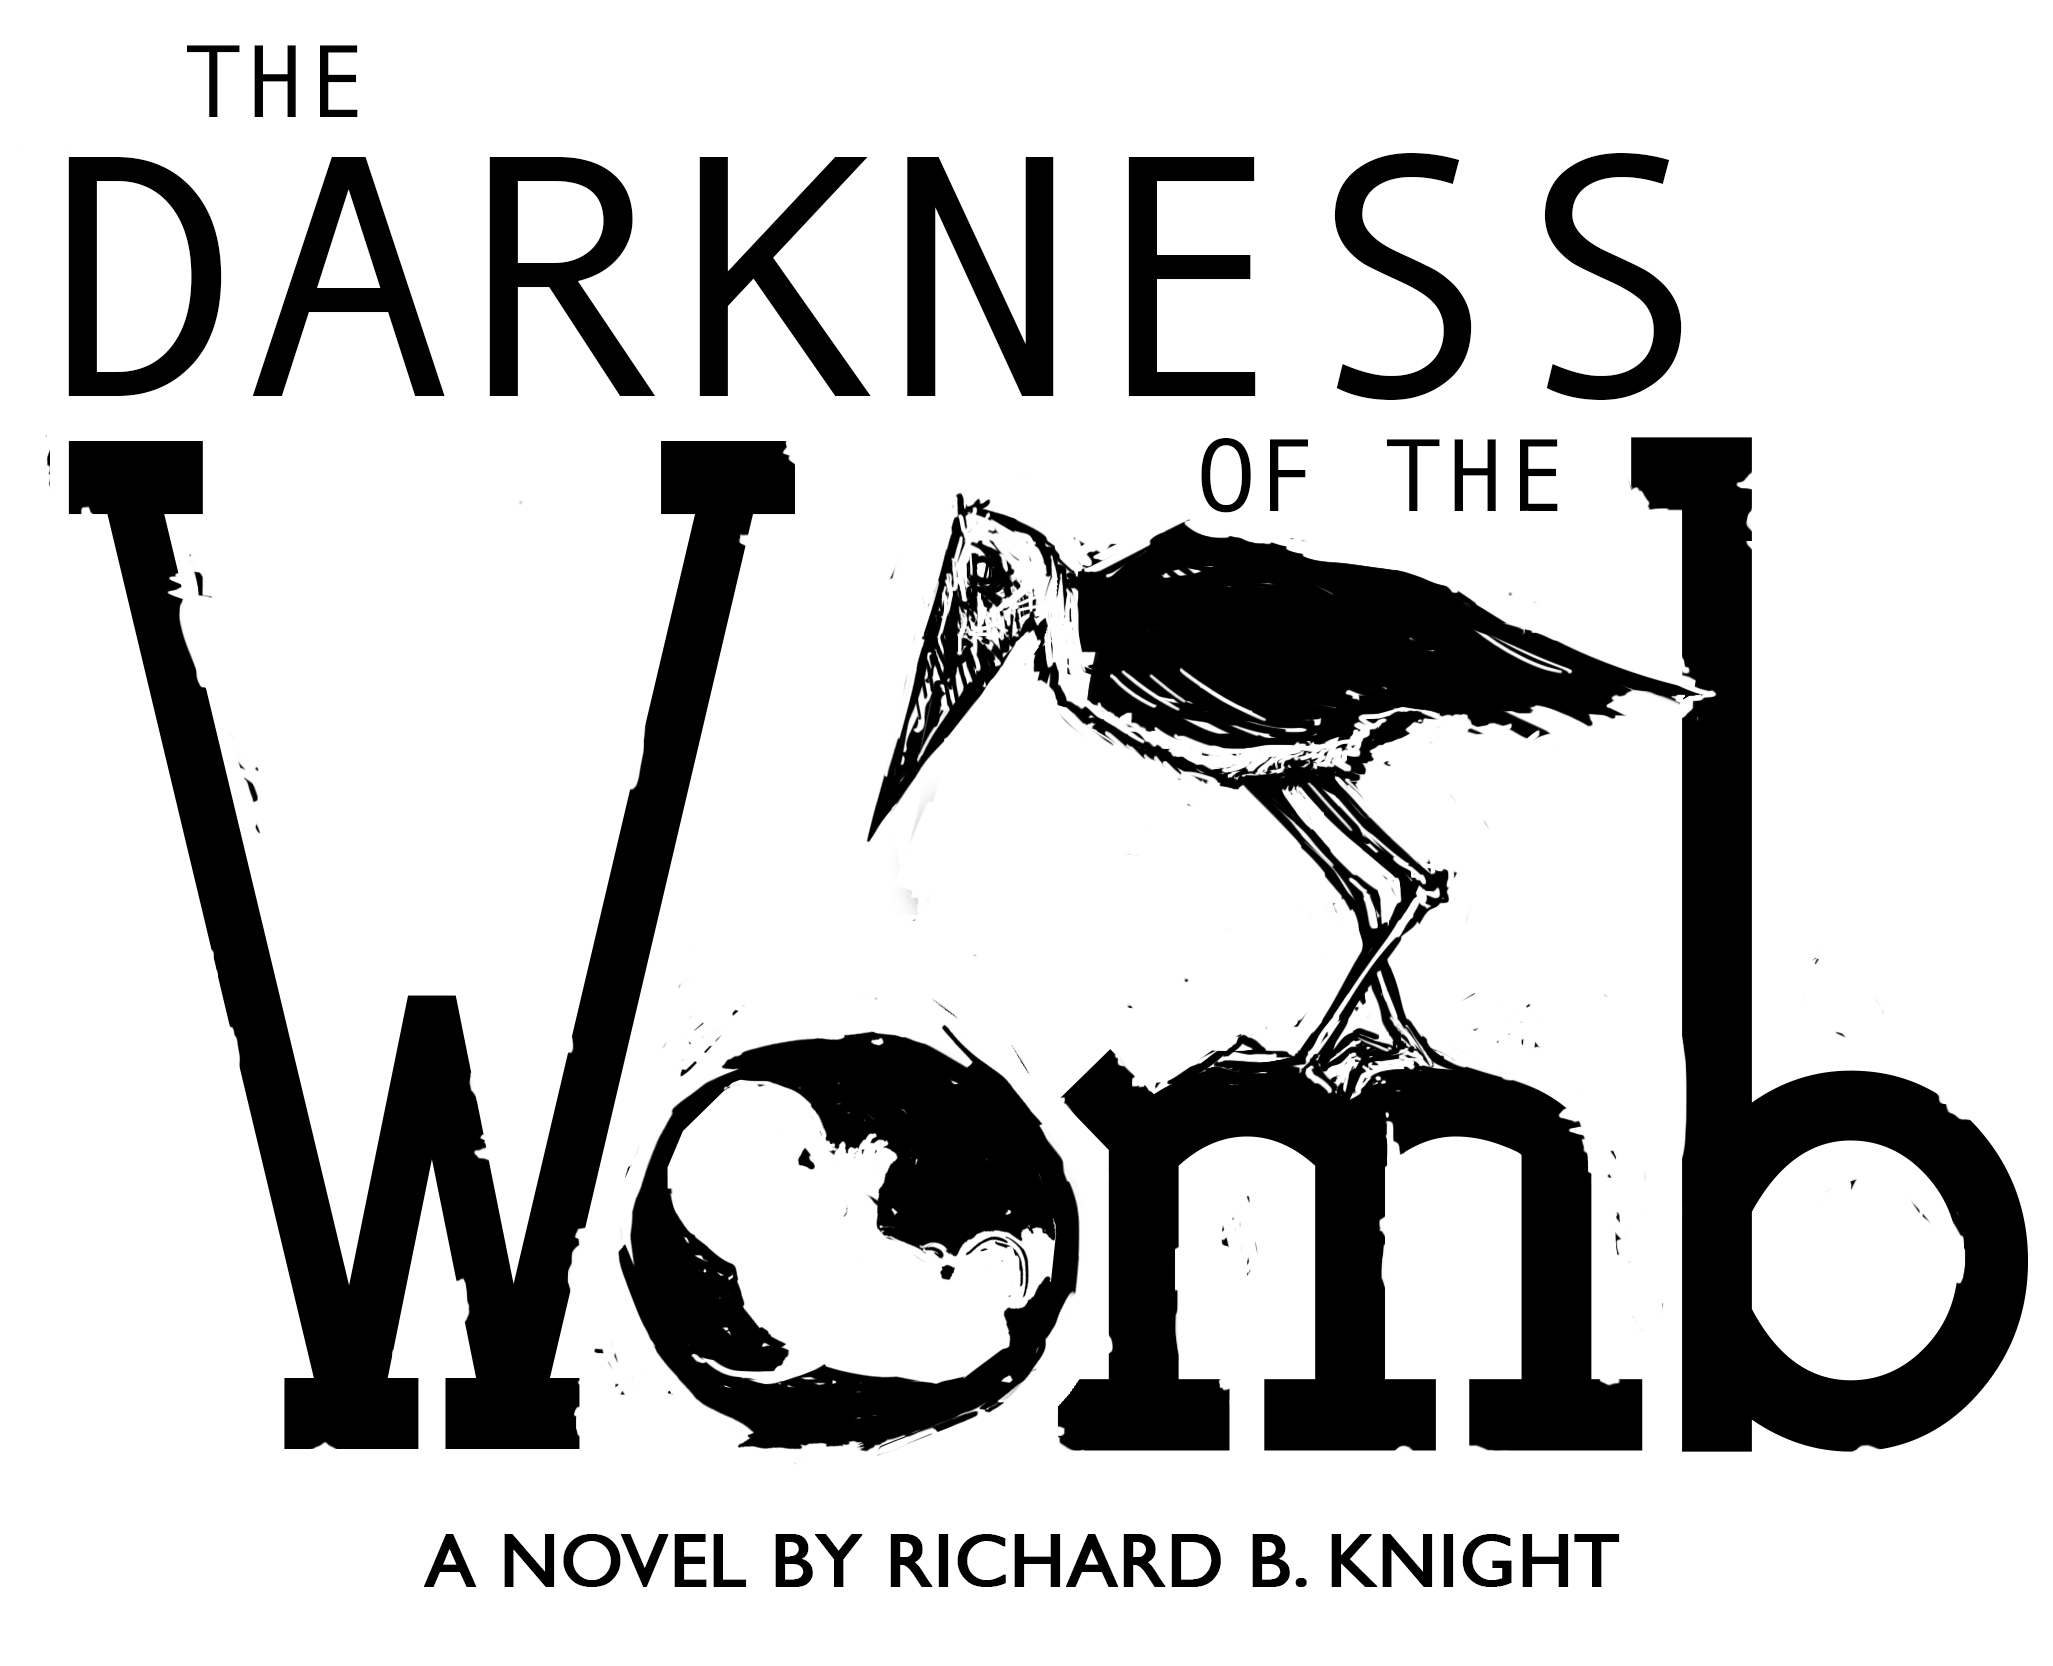 Interview with Richard B Knight, author of The Darkness of